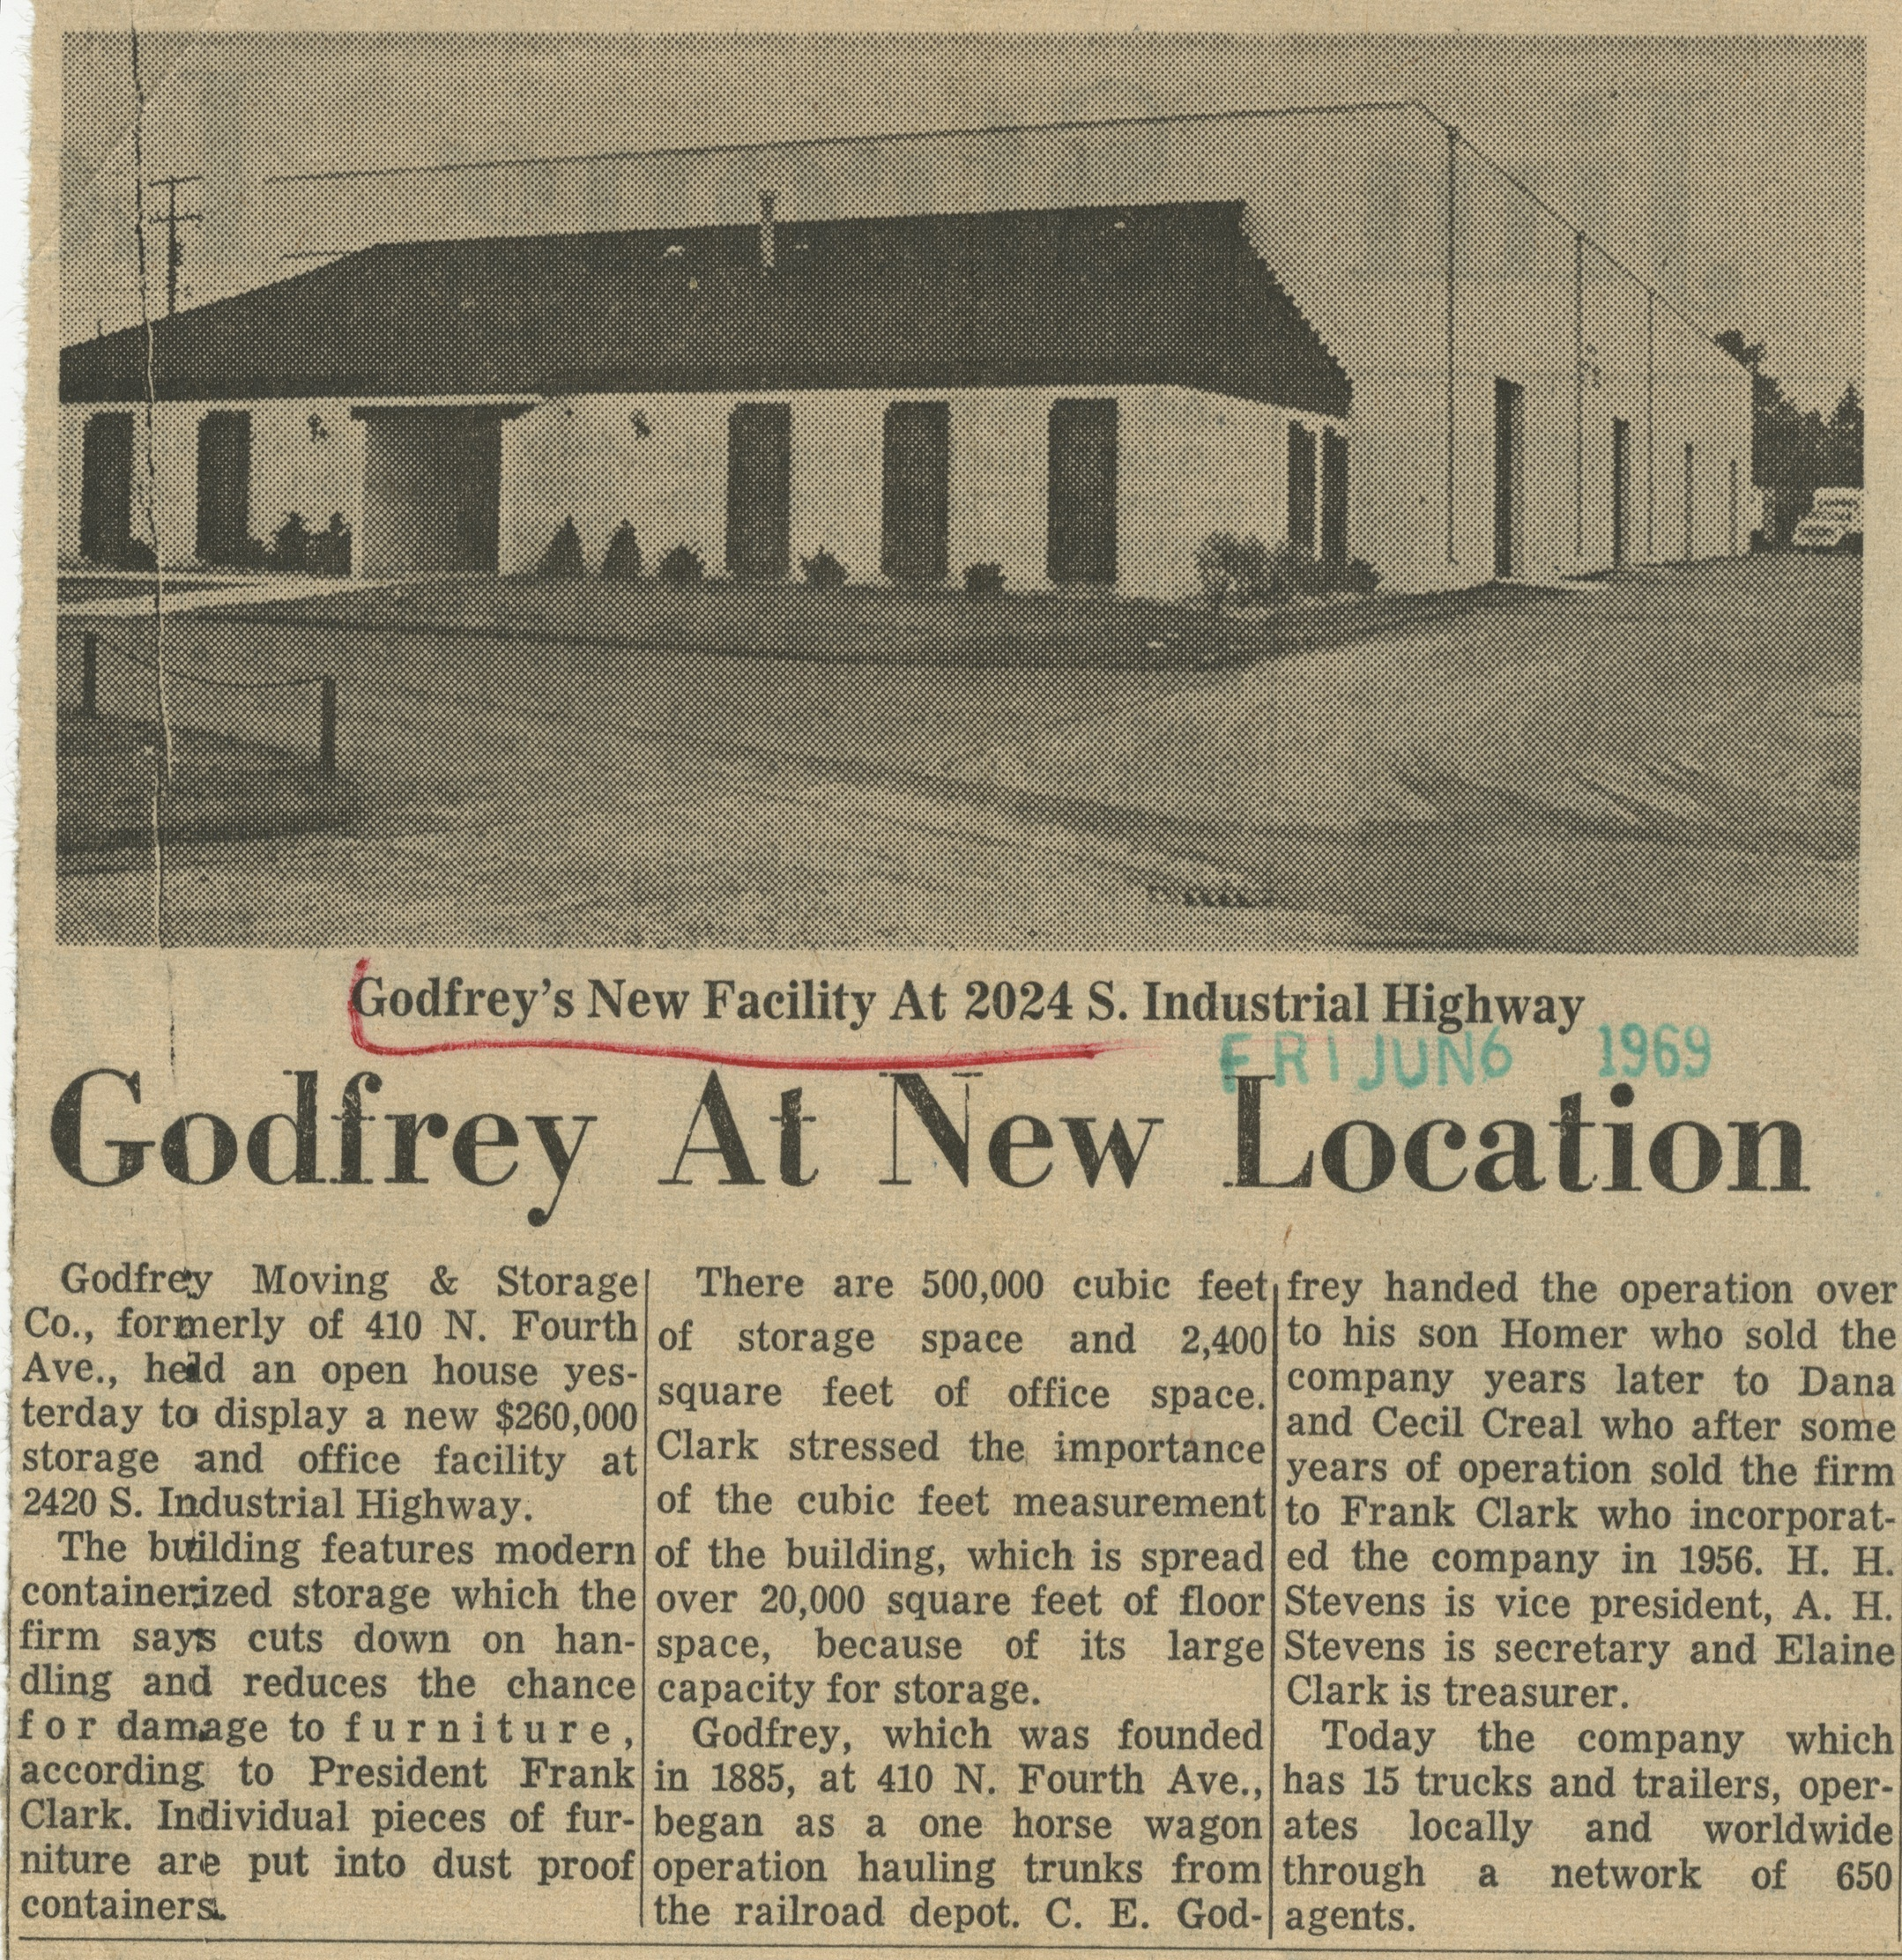 Godfrey At New Location image